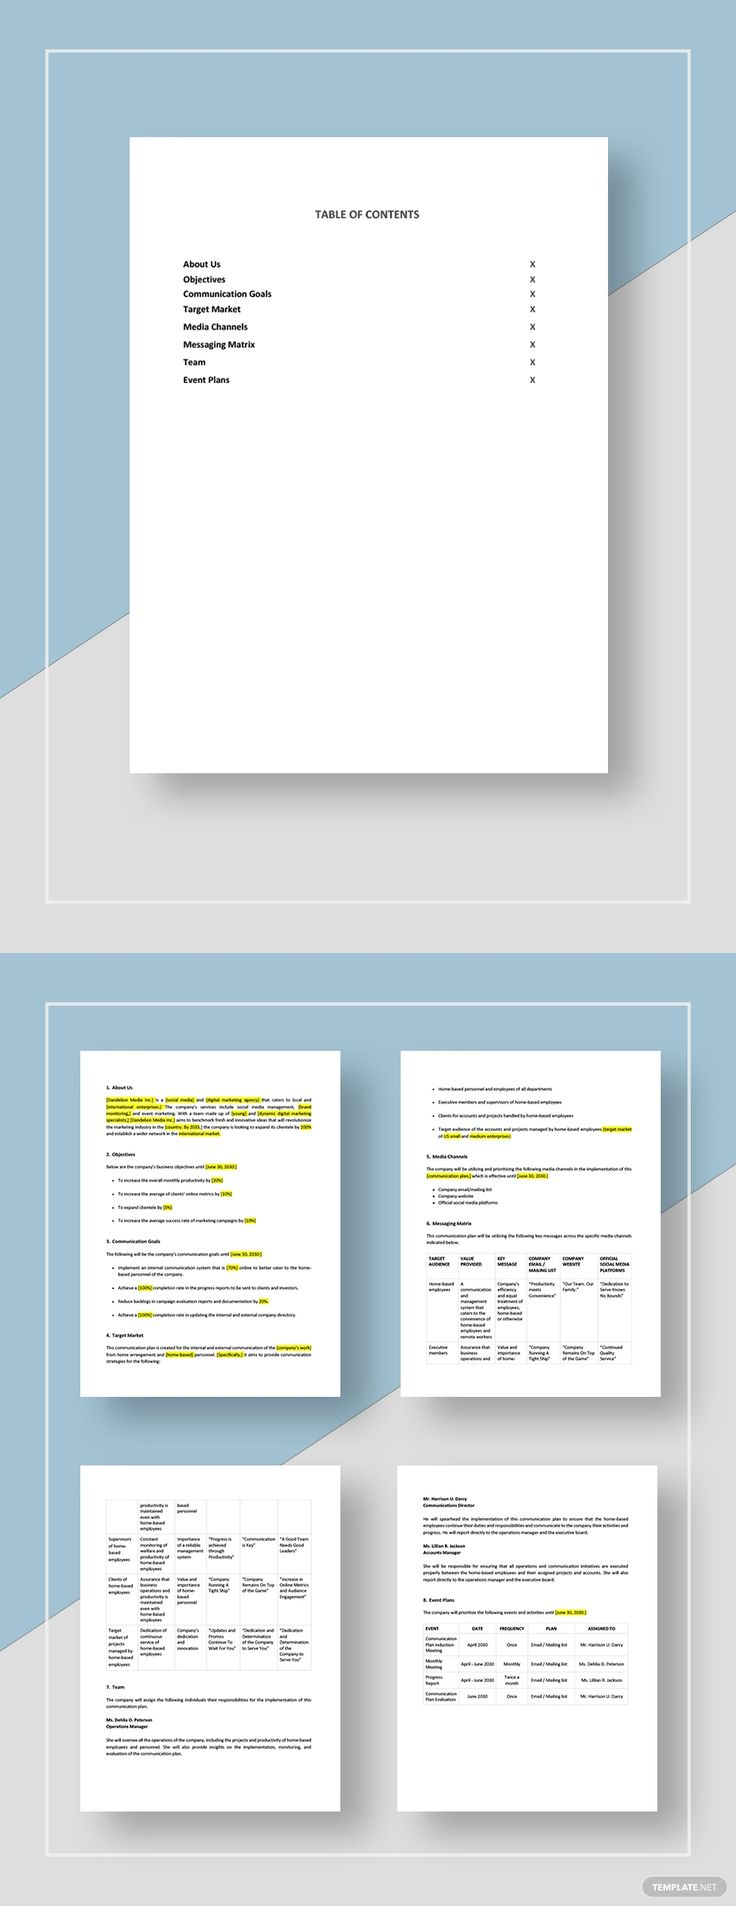 Work From Home Communication Plan Template AD, ,